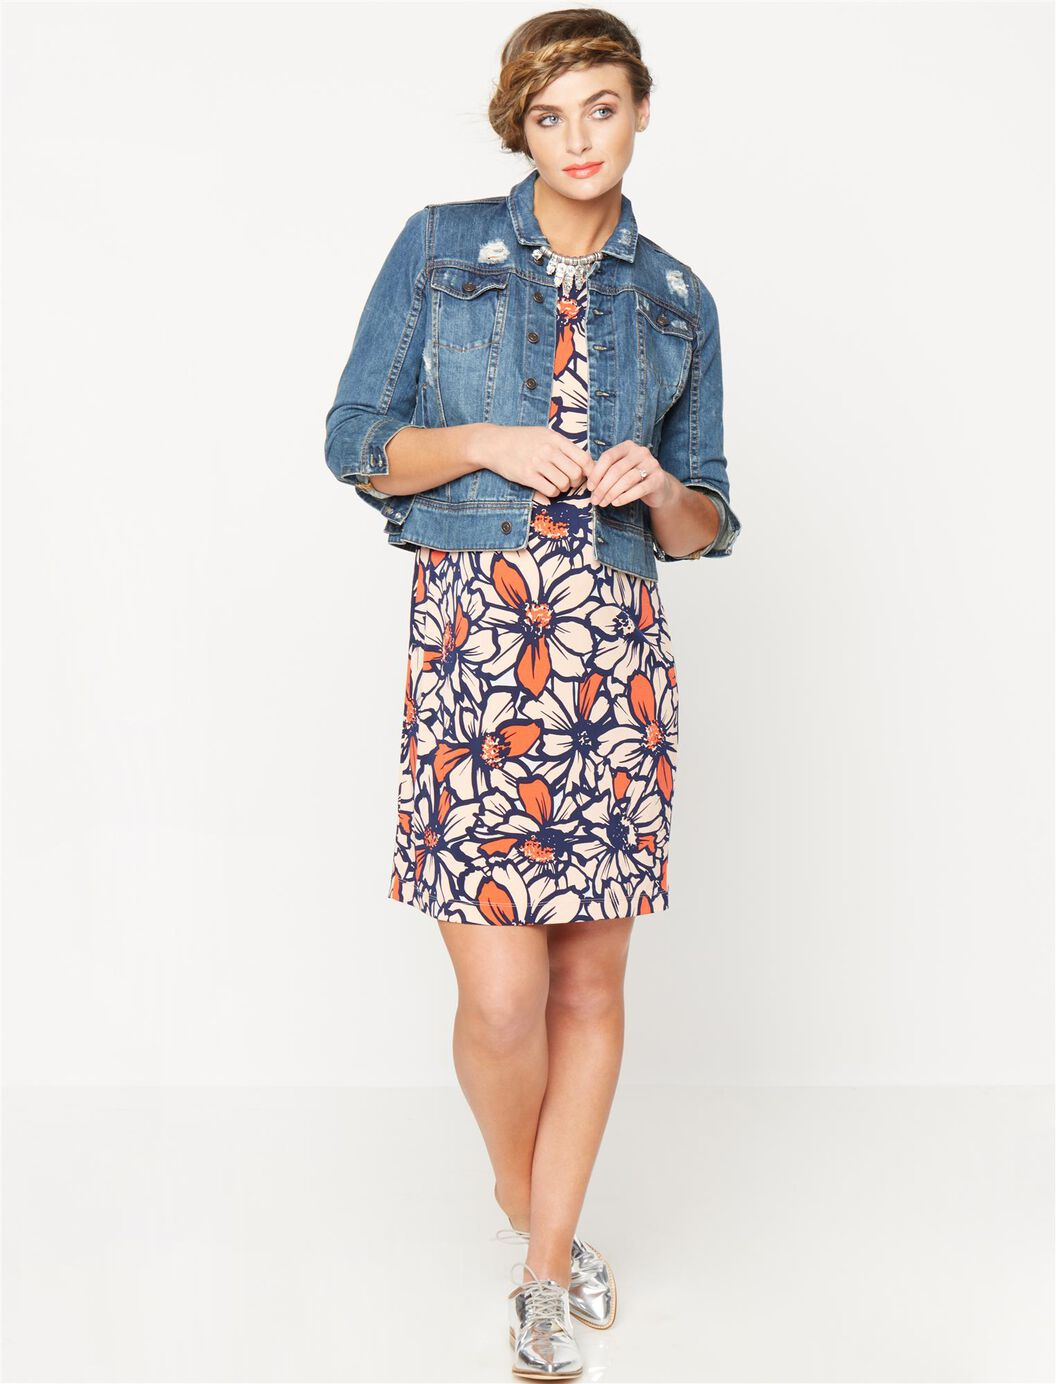 Taylor Boat Neck Maternity Shift Dress- Floral | A Pea in the Pod ...